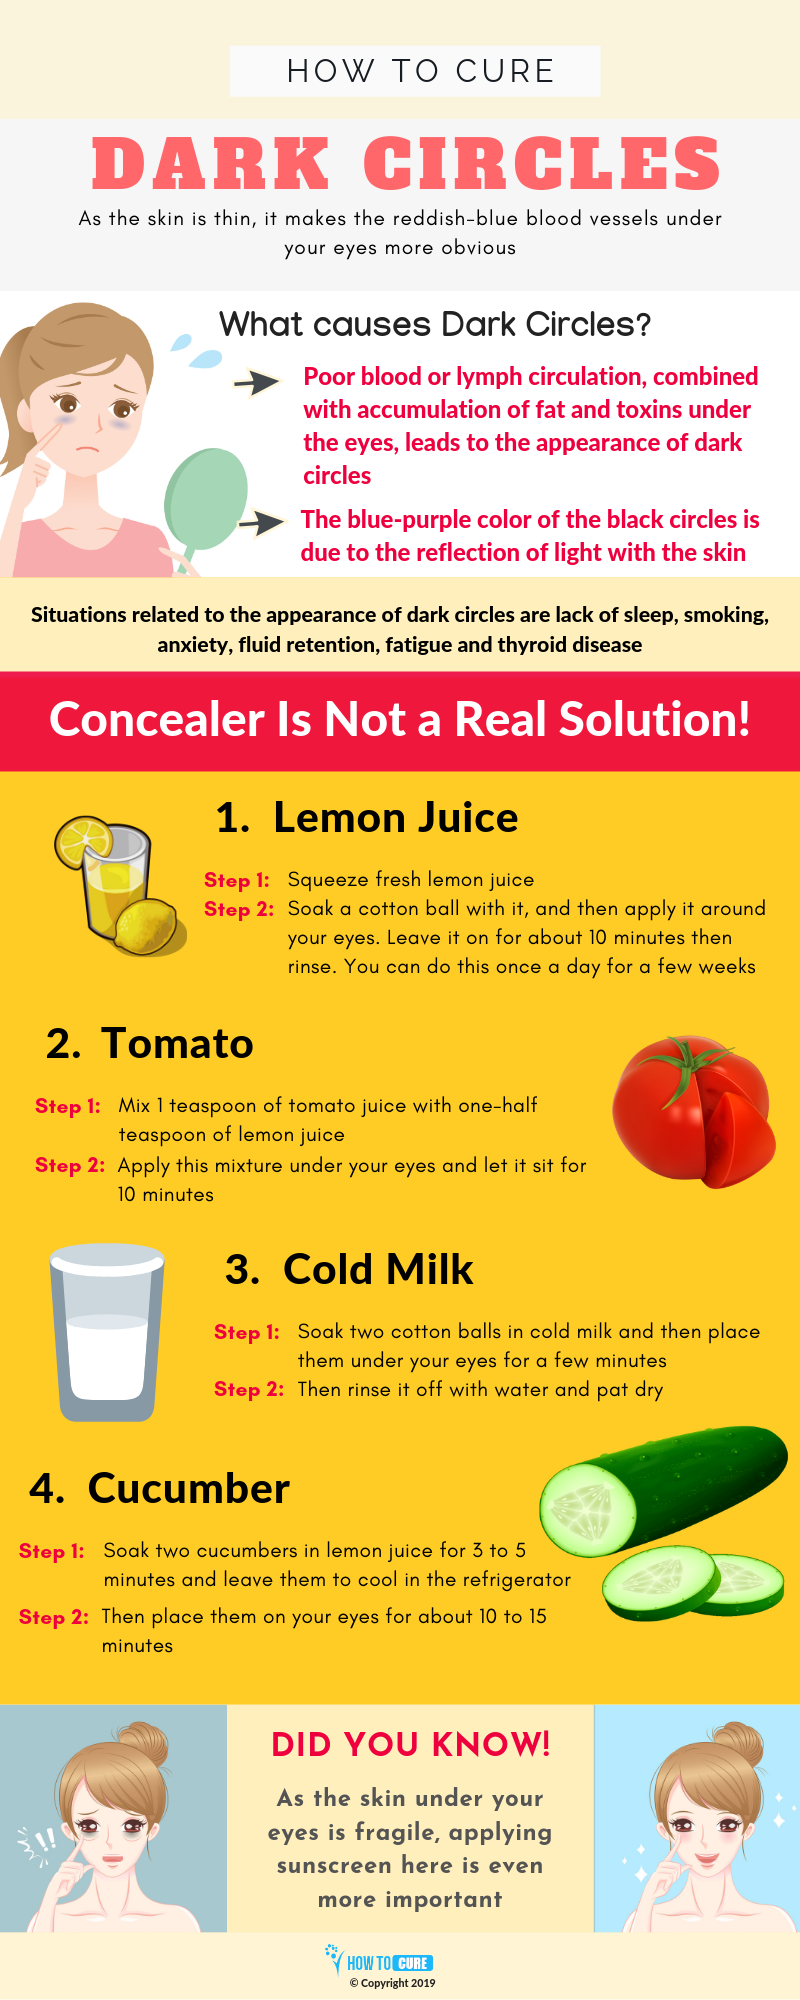 how to cure dark circles - infographic